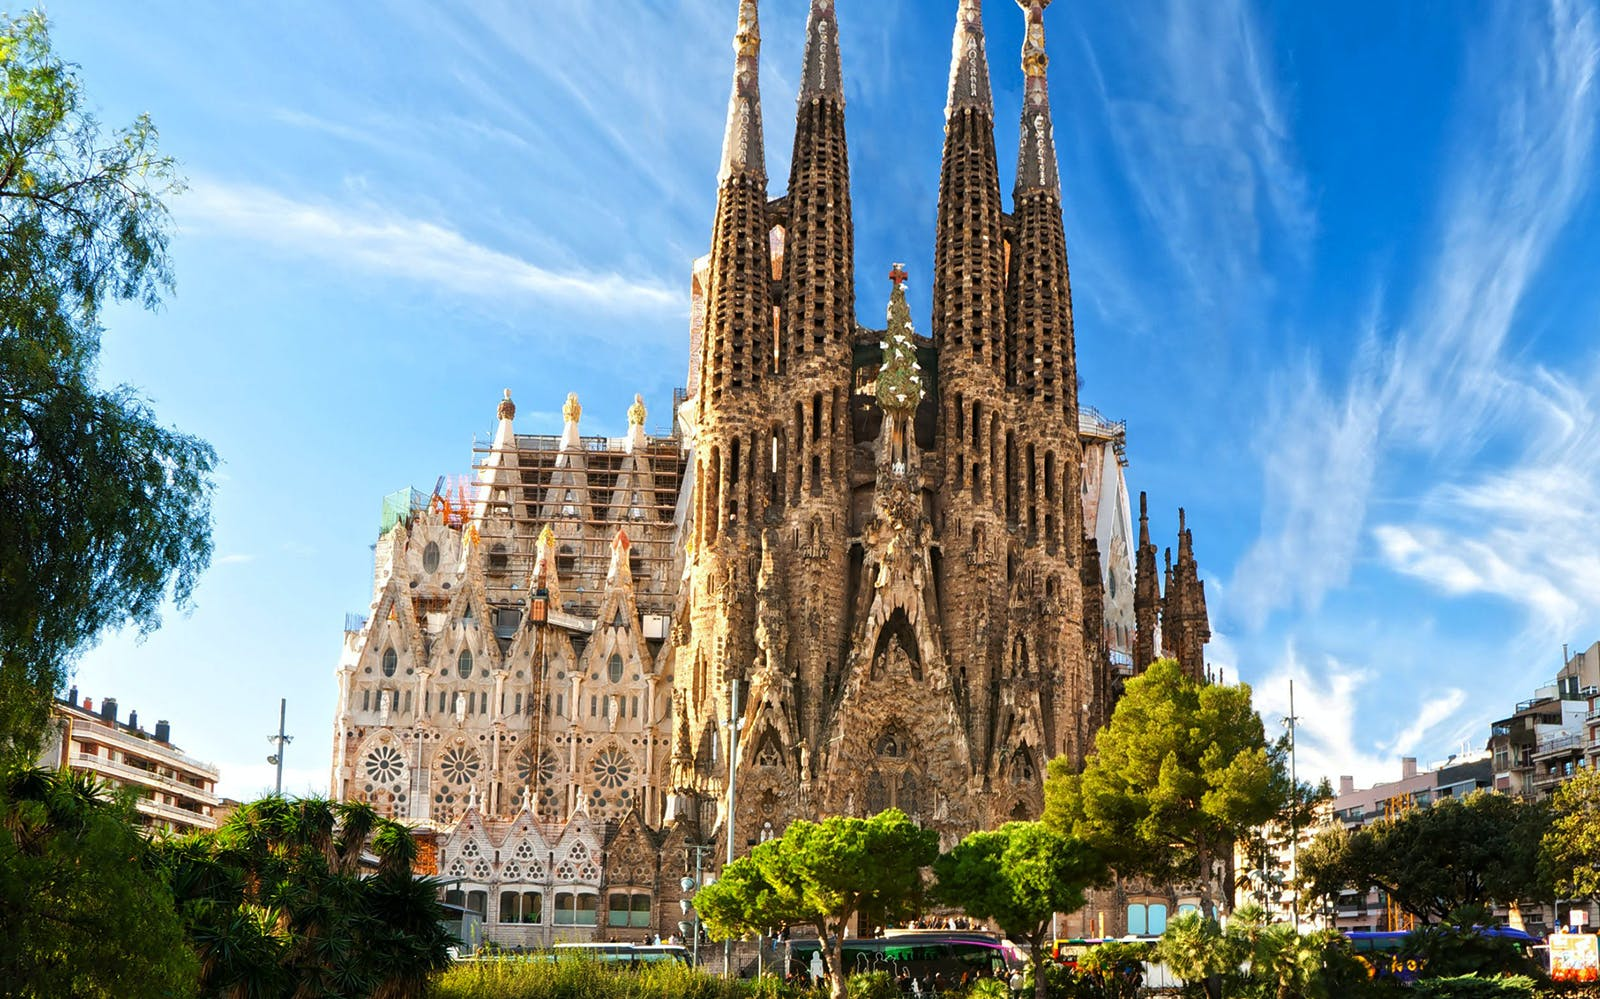 sagrada familia & torres bellesguard small group tour with brunch-3